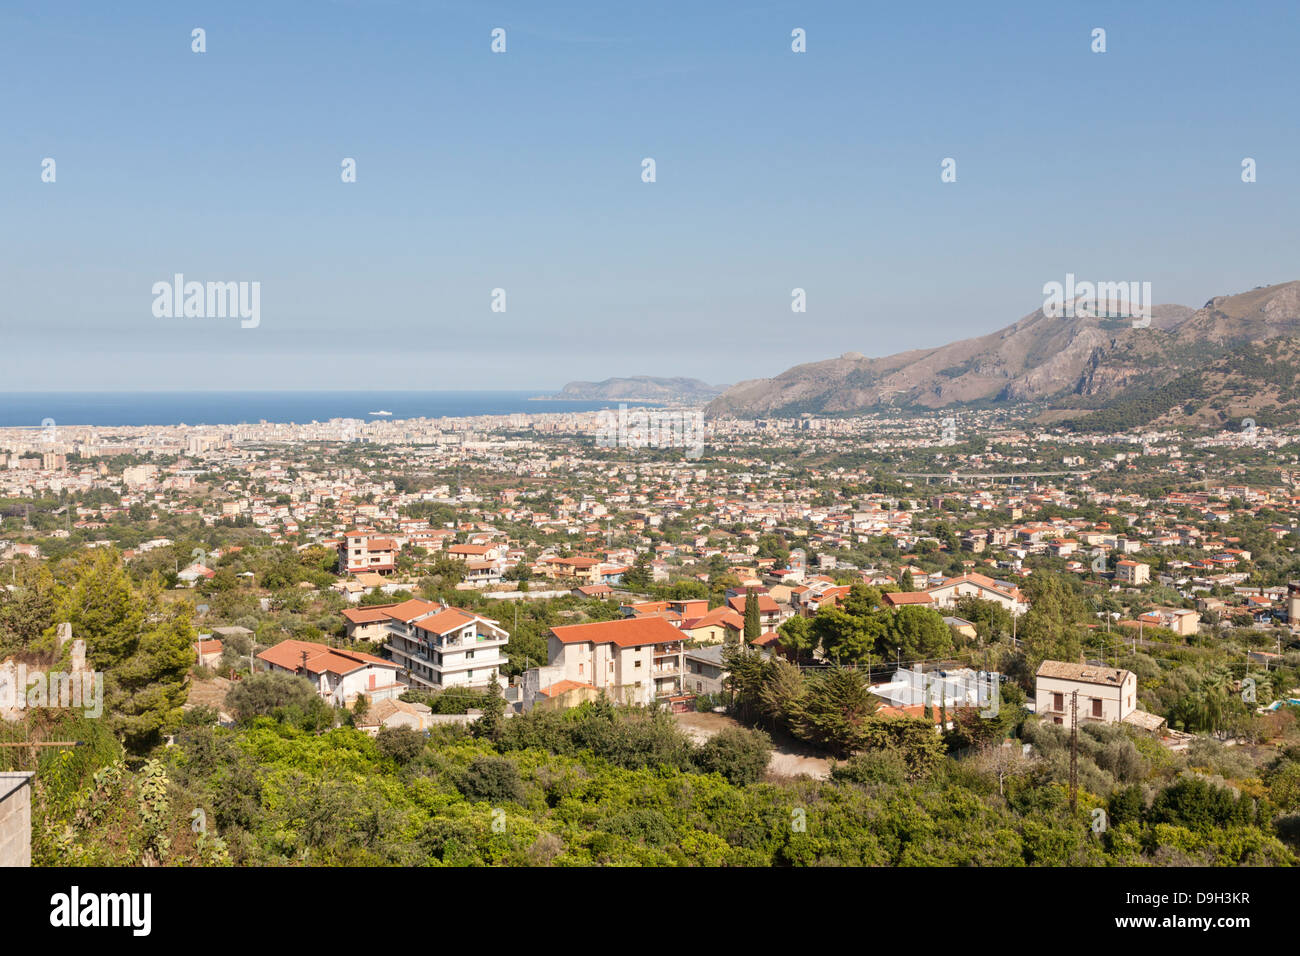 Conca D'oro, View accross the bay of Palermo, Sicily, Italy - Stock Image